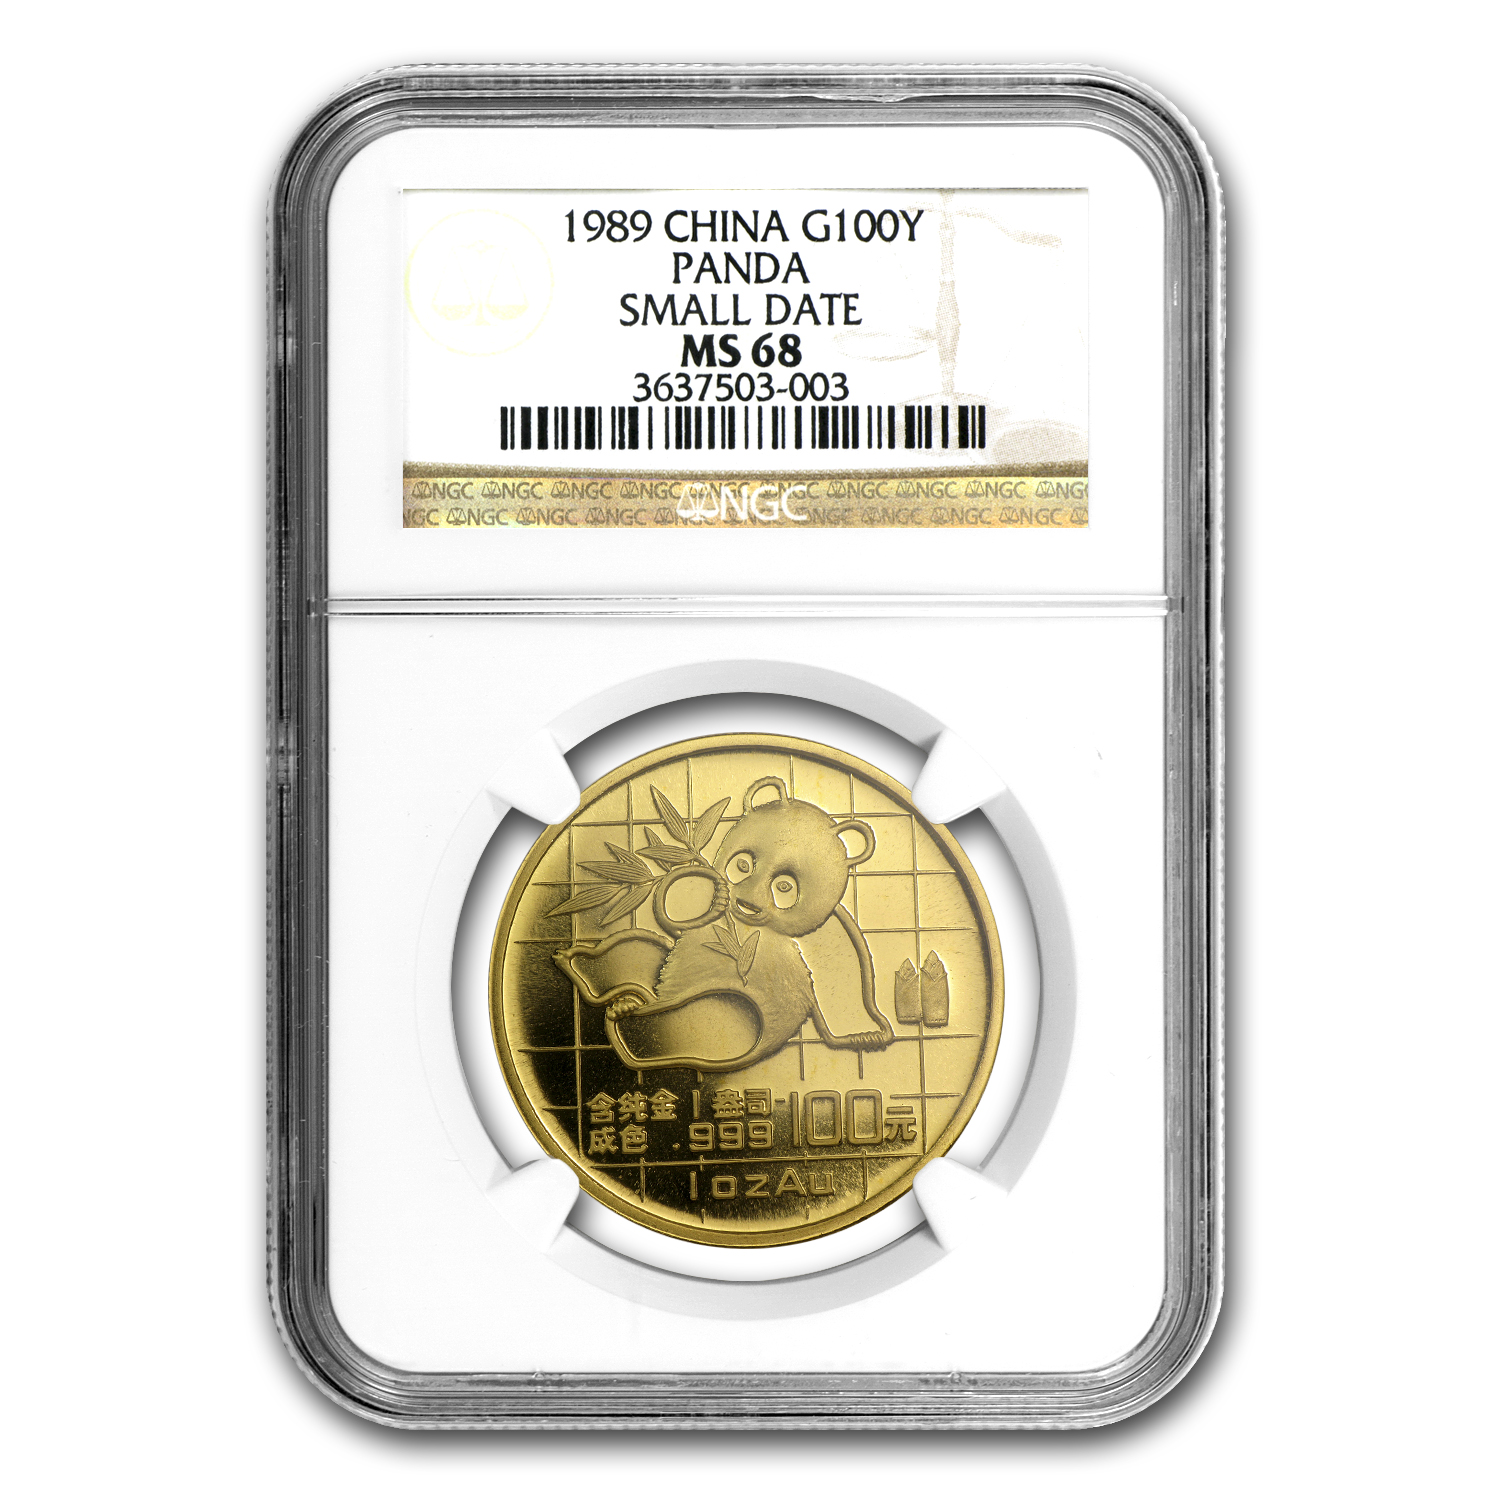 1989 1 oz Gold Chinese Panda MS-68 NGC - Small Date